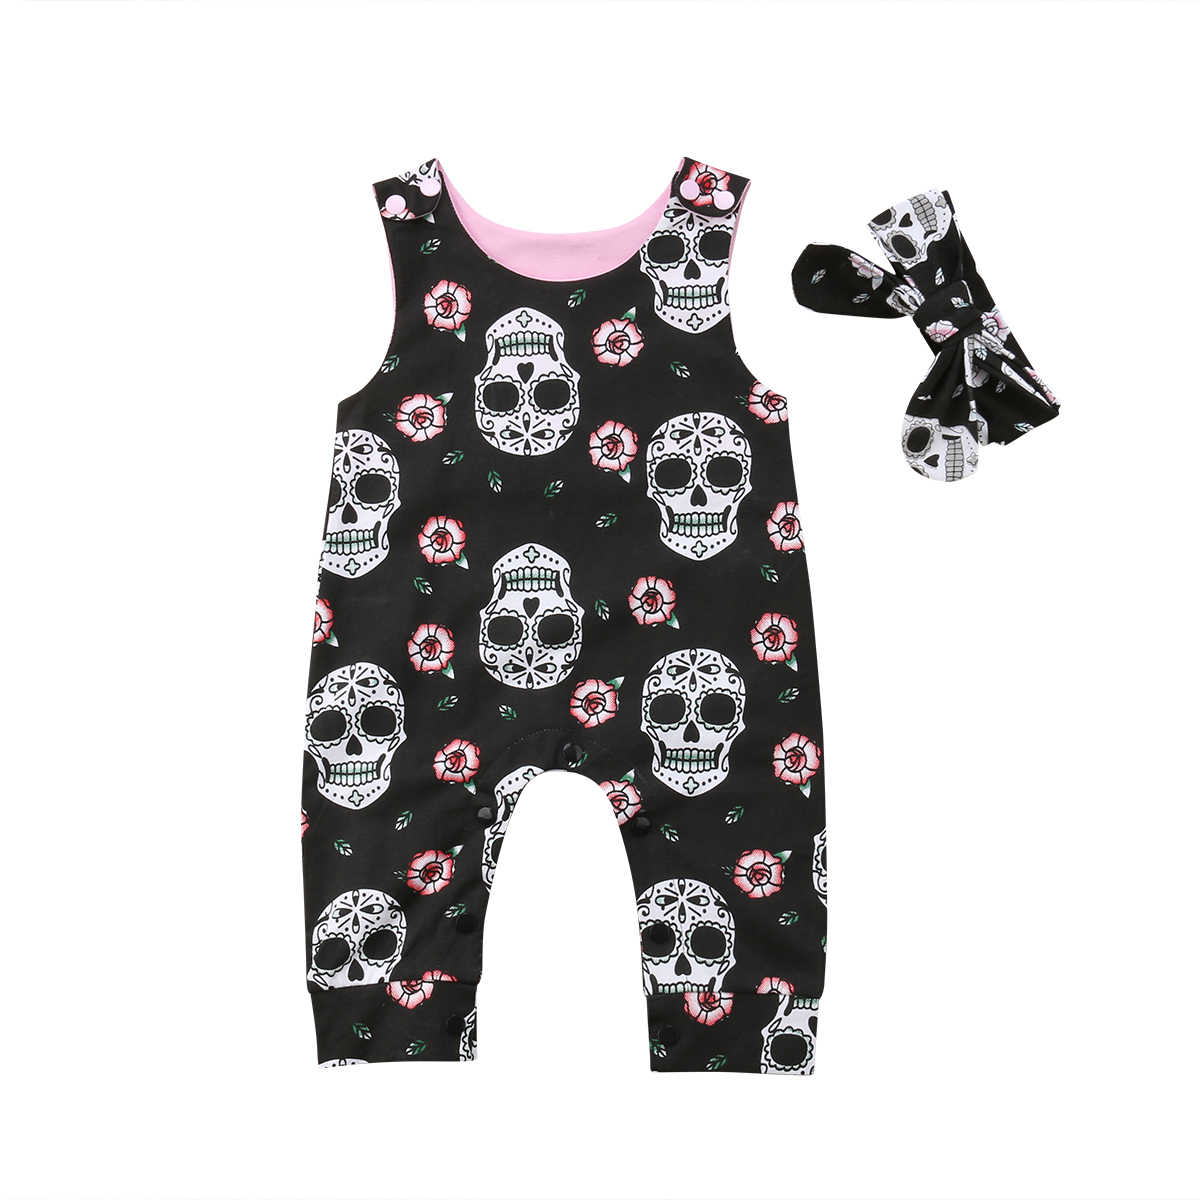 75c0b1fd3 Halloween Newborn Baby Boy Girl Sleeveless Skull Floral Romper Jumpsuit  Headband 2pcs Outfits Baby Clothes